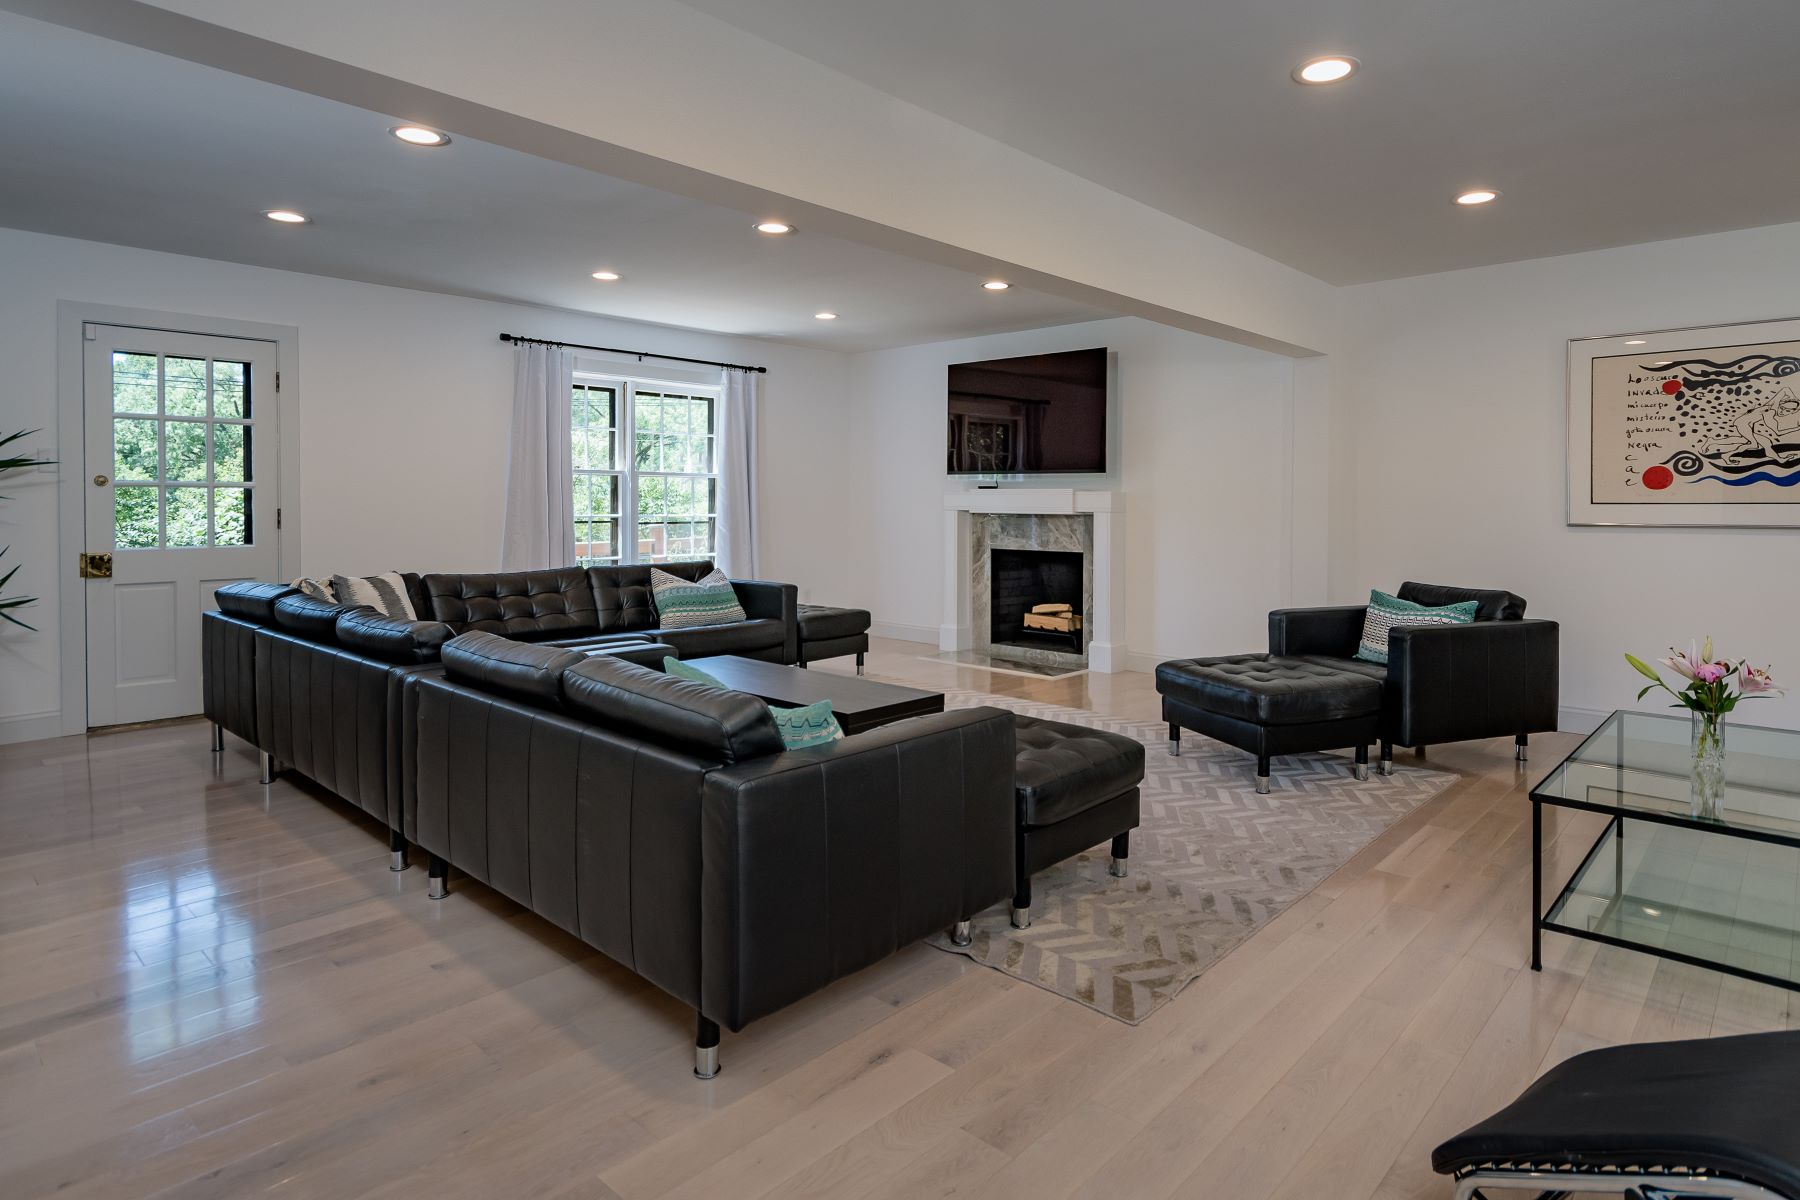 Additional photo for property listing at Classic Yet Modern 2-Story in Beautiful Ladue 43 Granada Way Ladue, Missouri 63124 United States